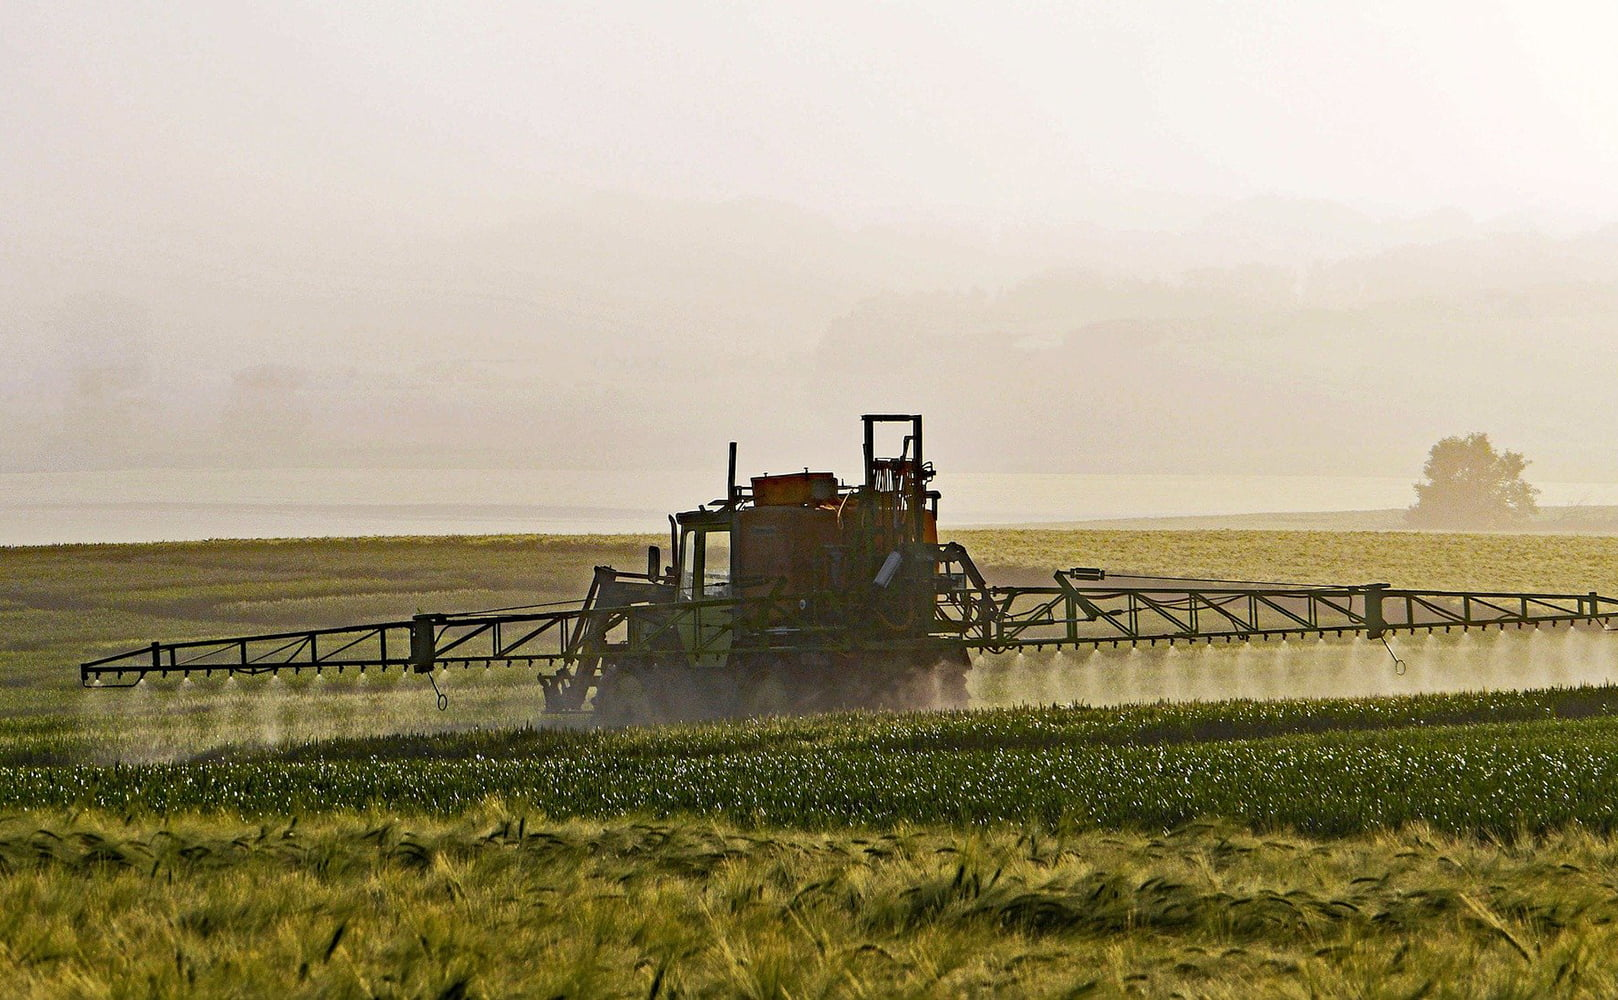 Farmer Spraying Pesticides on Wheat Field